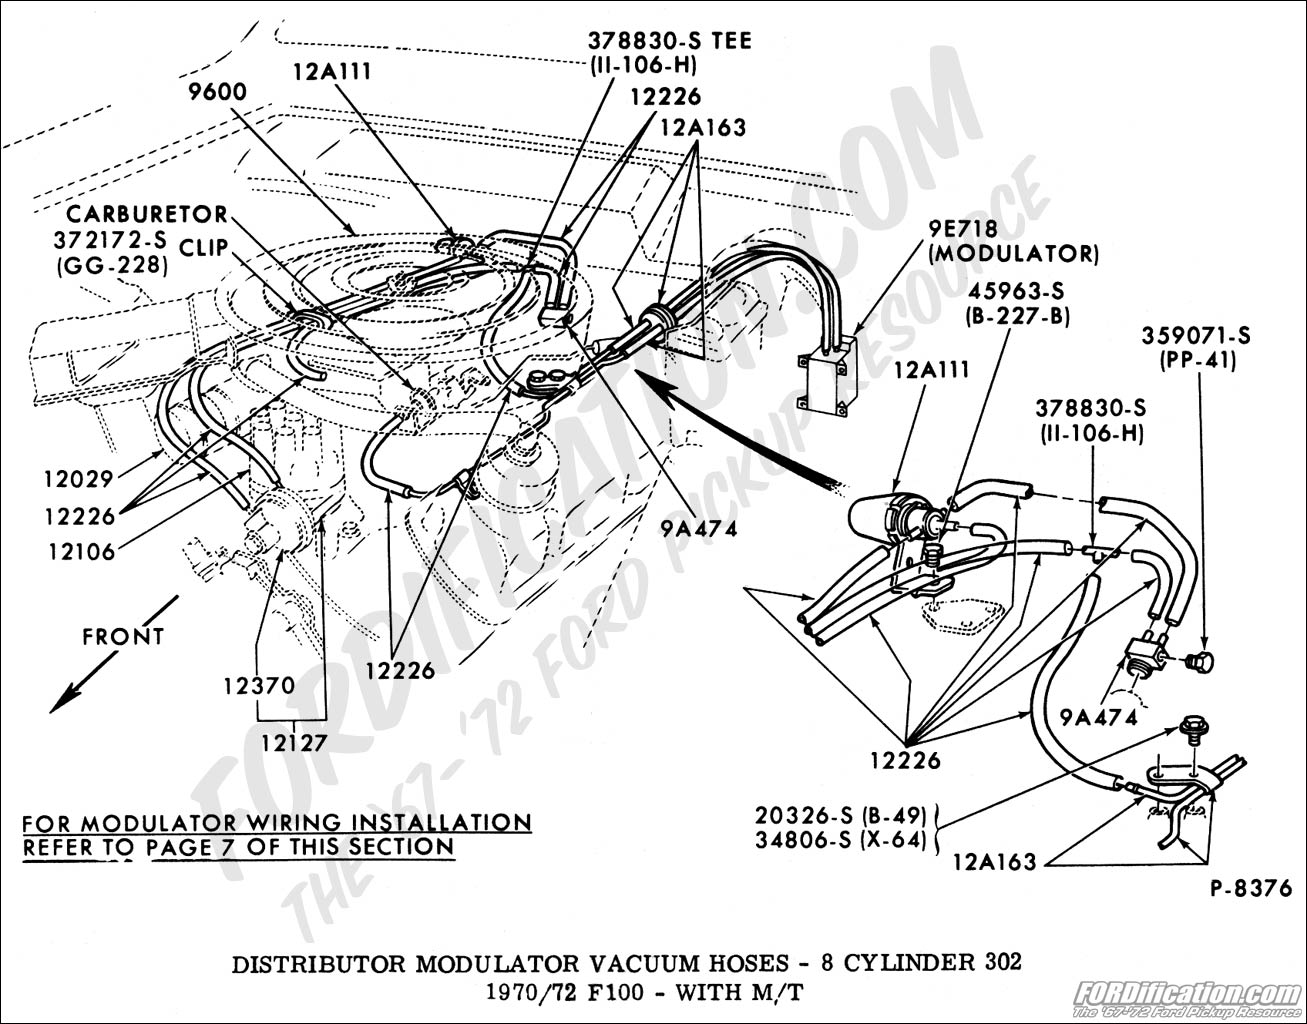 T14476618 Diagram replace fan belt ford bantam together with Honda 300 Trx Electrical Diagram also Schematics i as well Ford Freestar 3 9 Engine Diagram additionally Belt Routing Diagram For A 2001 2 4 Pt Cruiser. on 2006 mustang v6 serpentine belt route